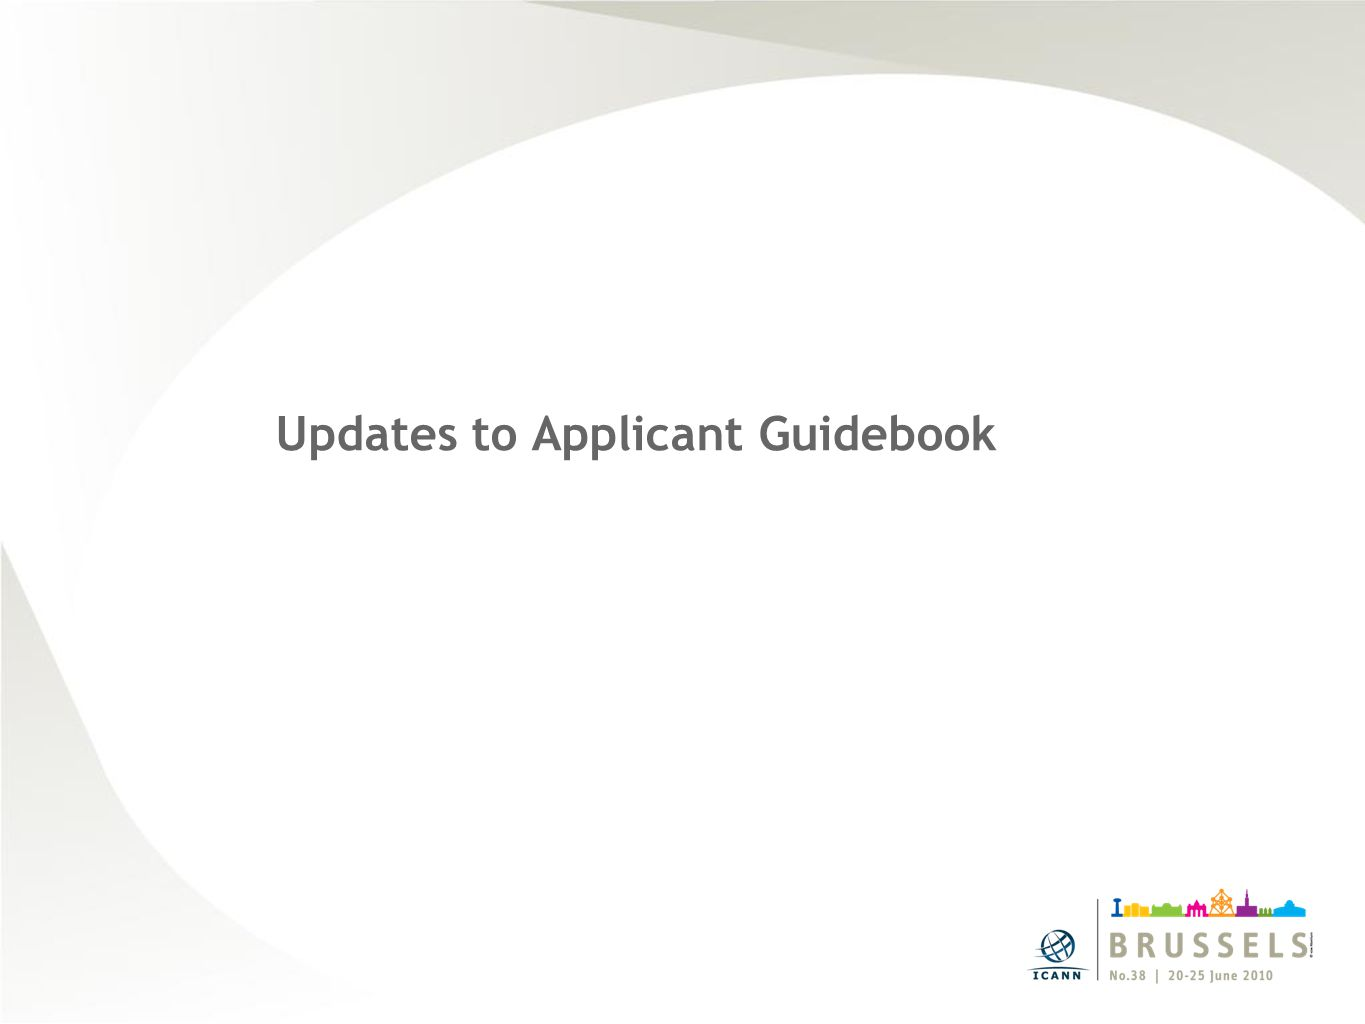 Updates to Applicant Guidebook